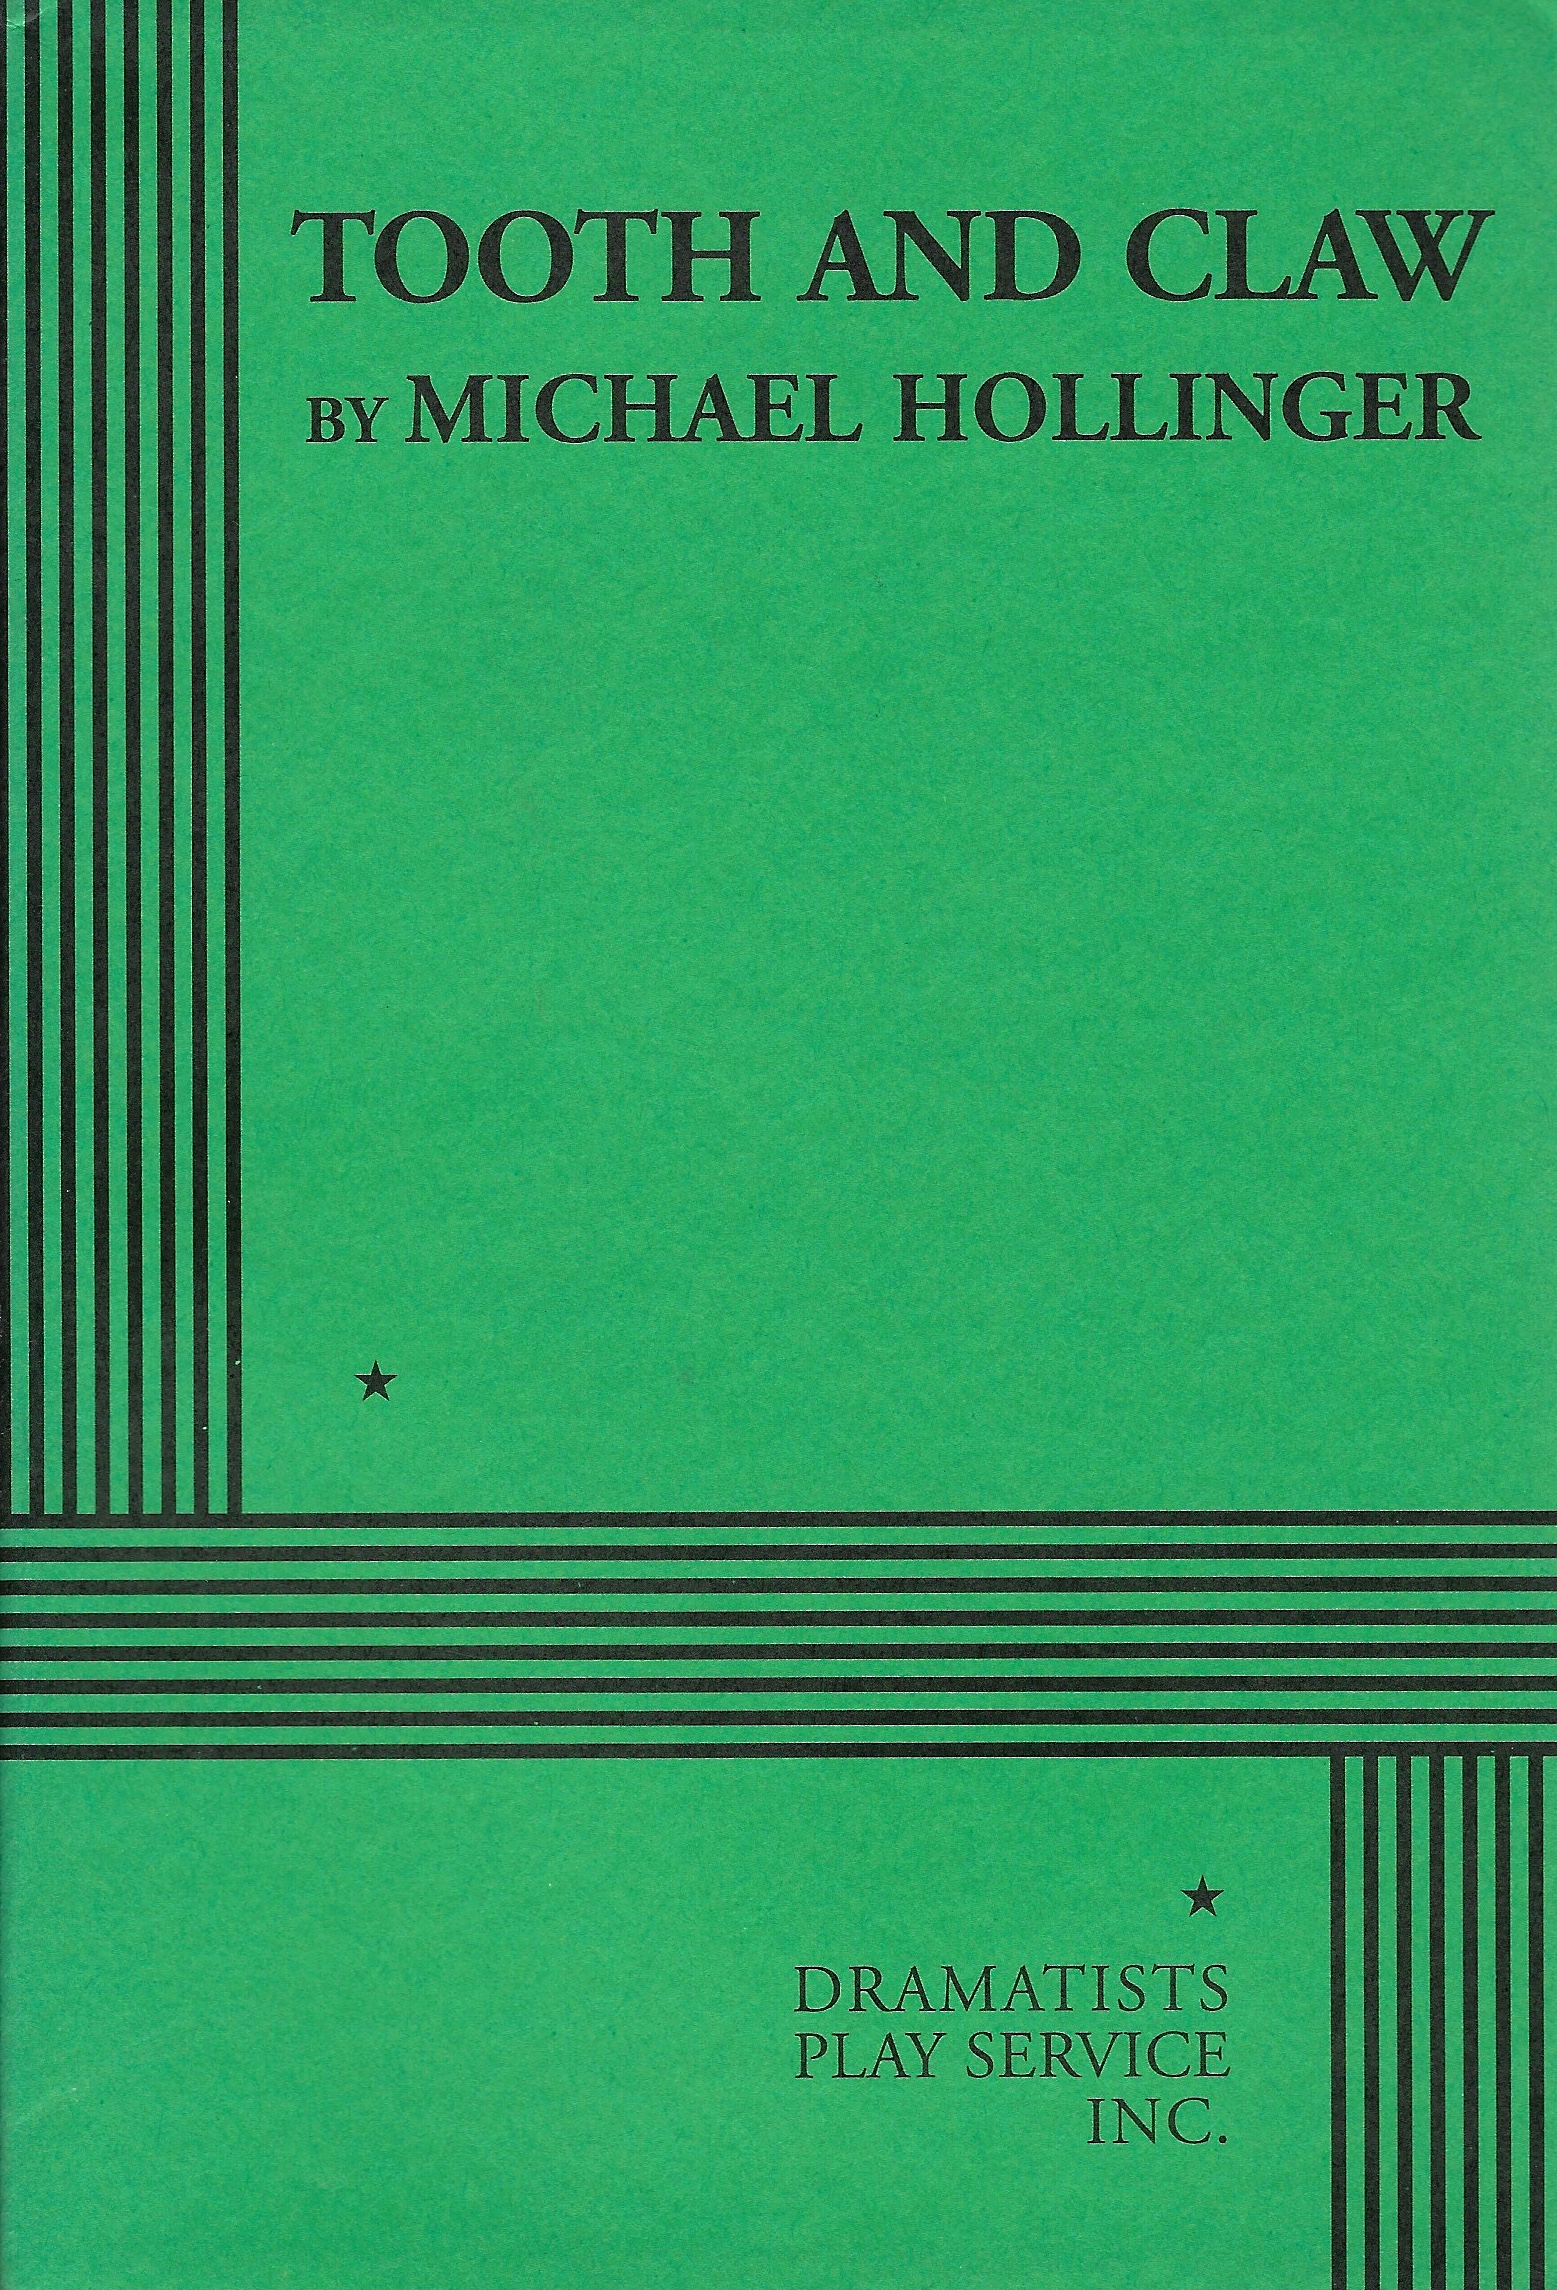 Tooth and Claw, Michael Hollinger